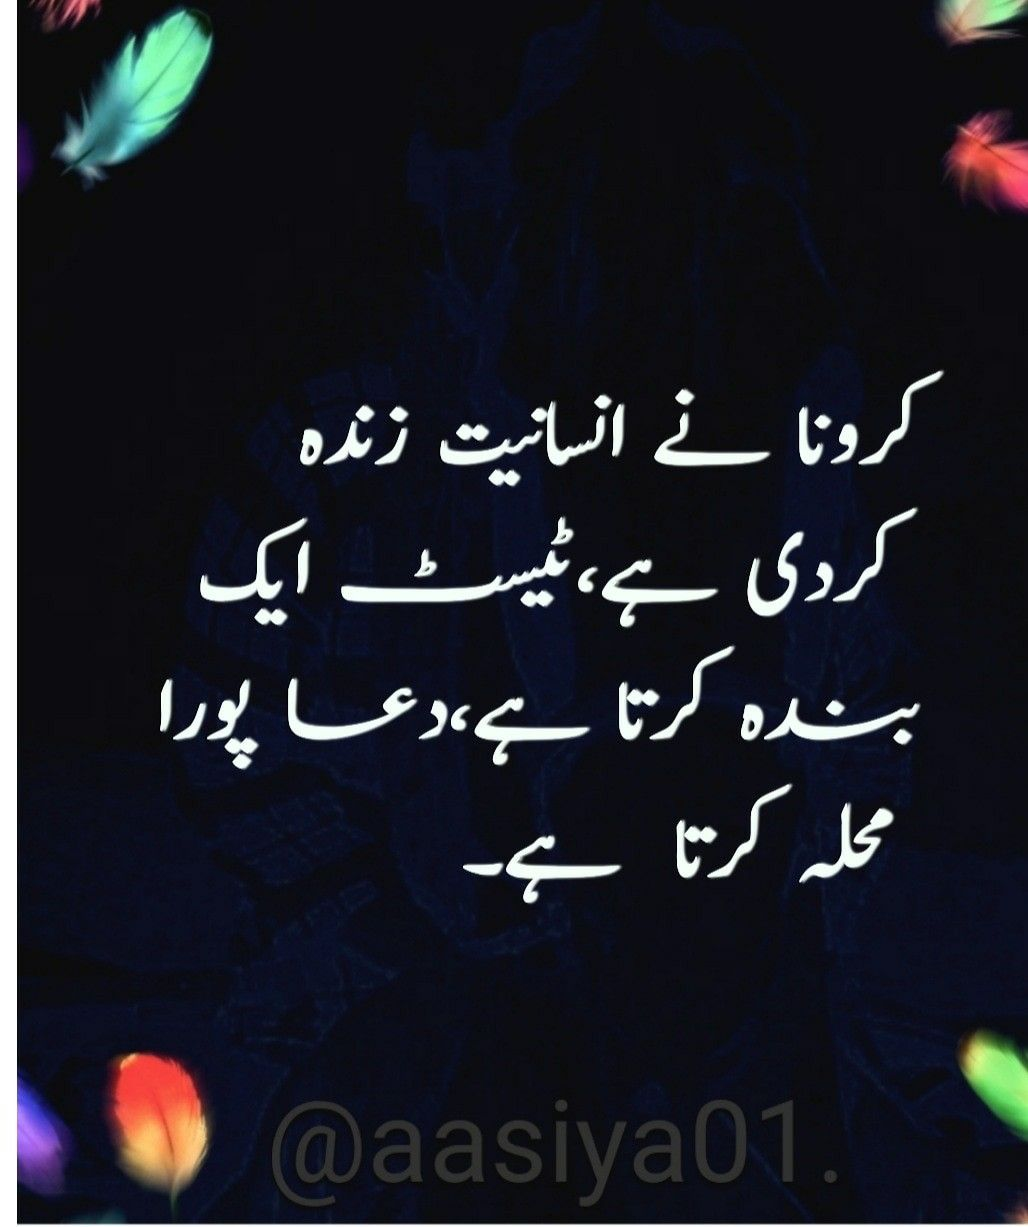 Pin By Aasiya01 On Aasiya01 Urdu Funny Quotes Funny Quotes Deep Words